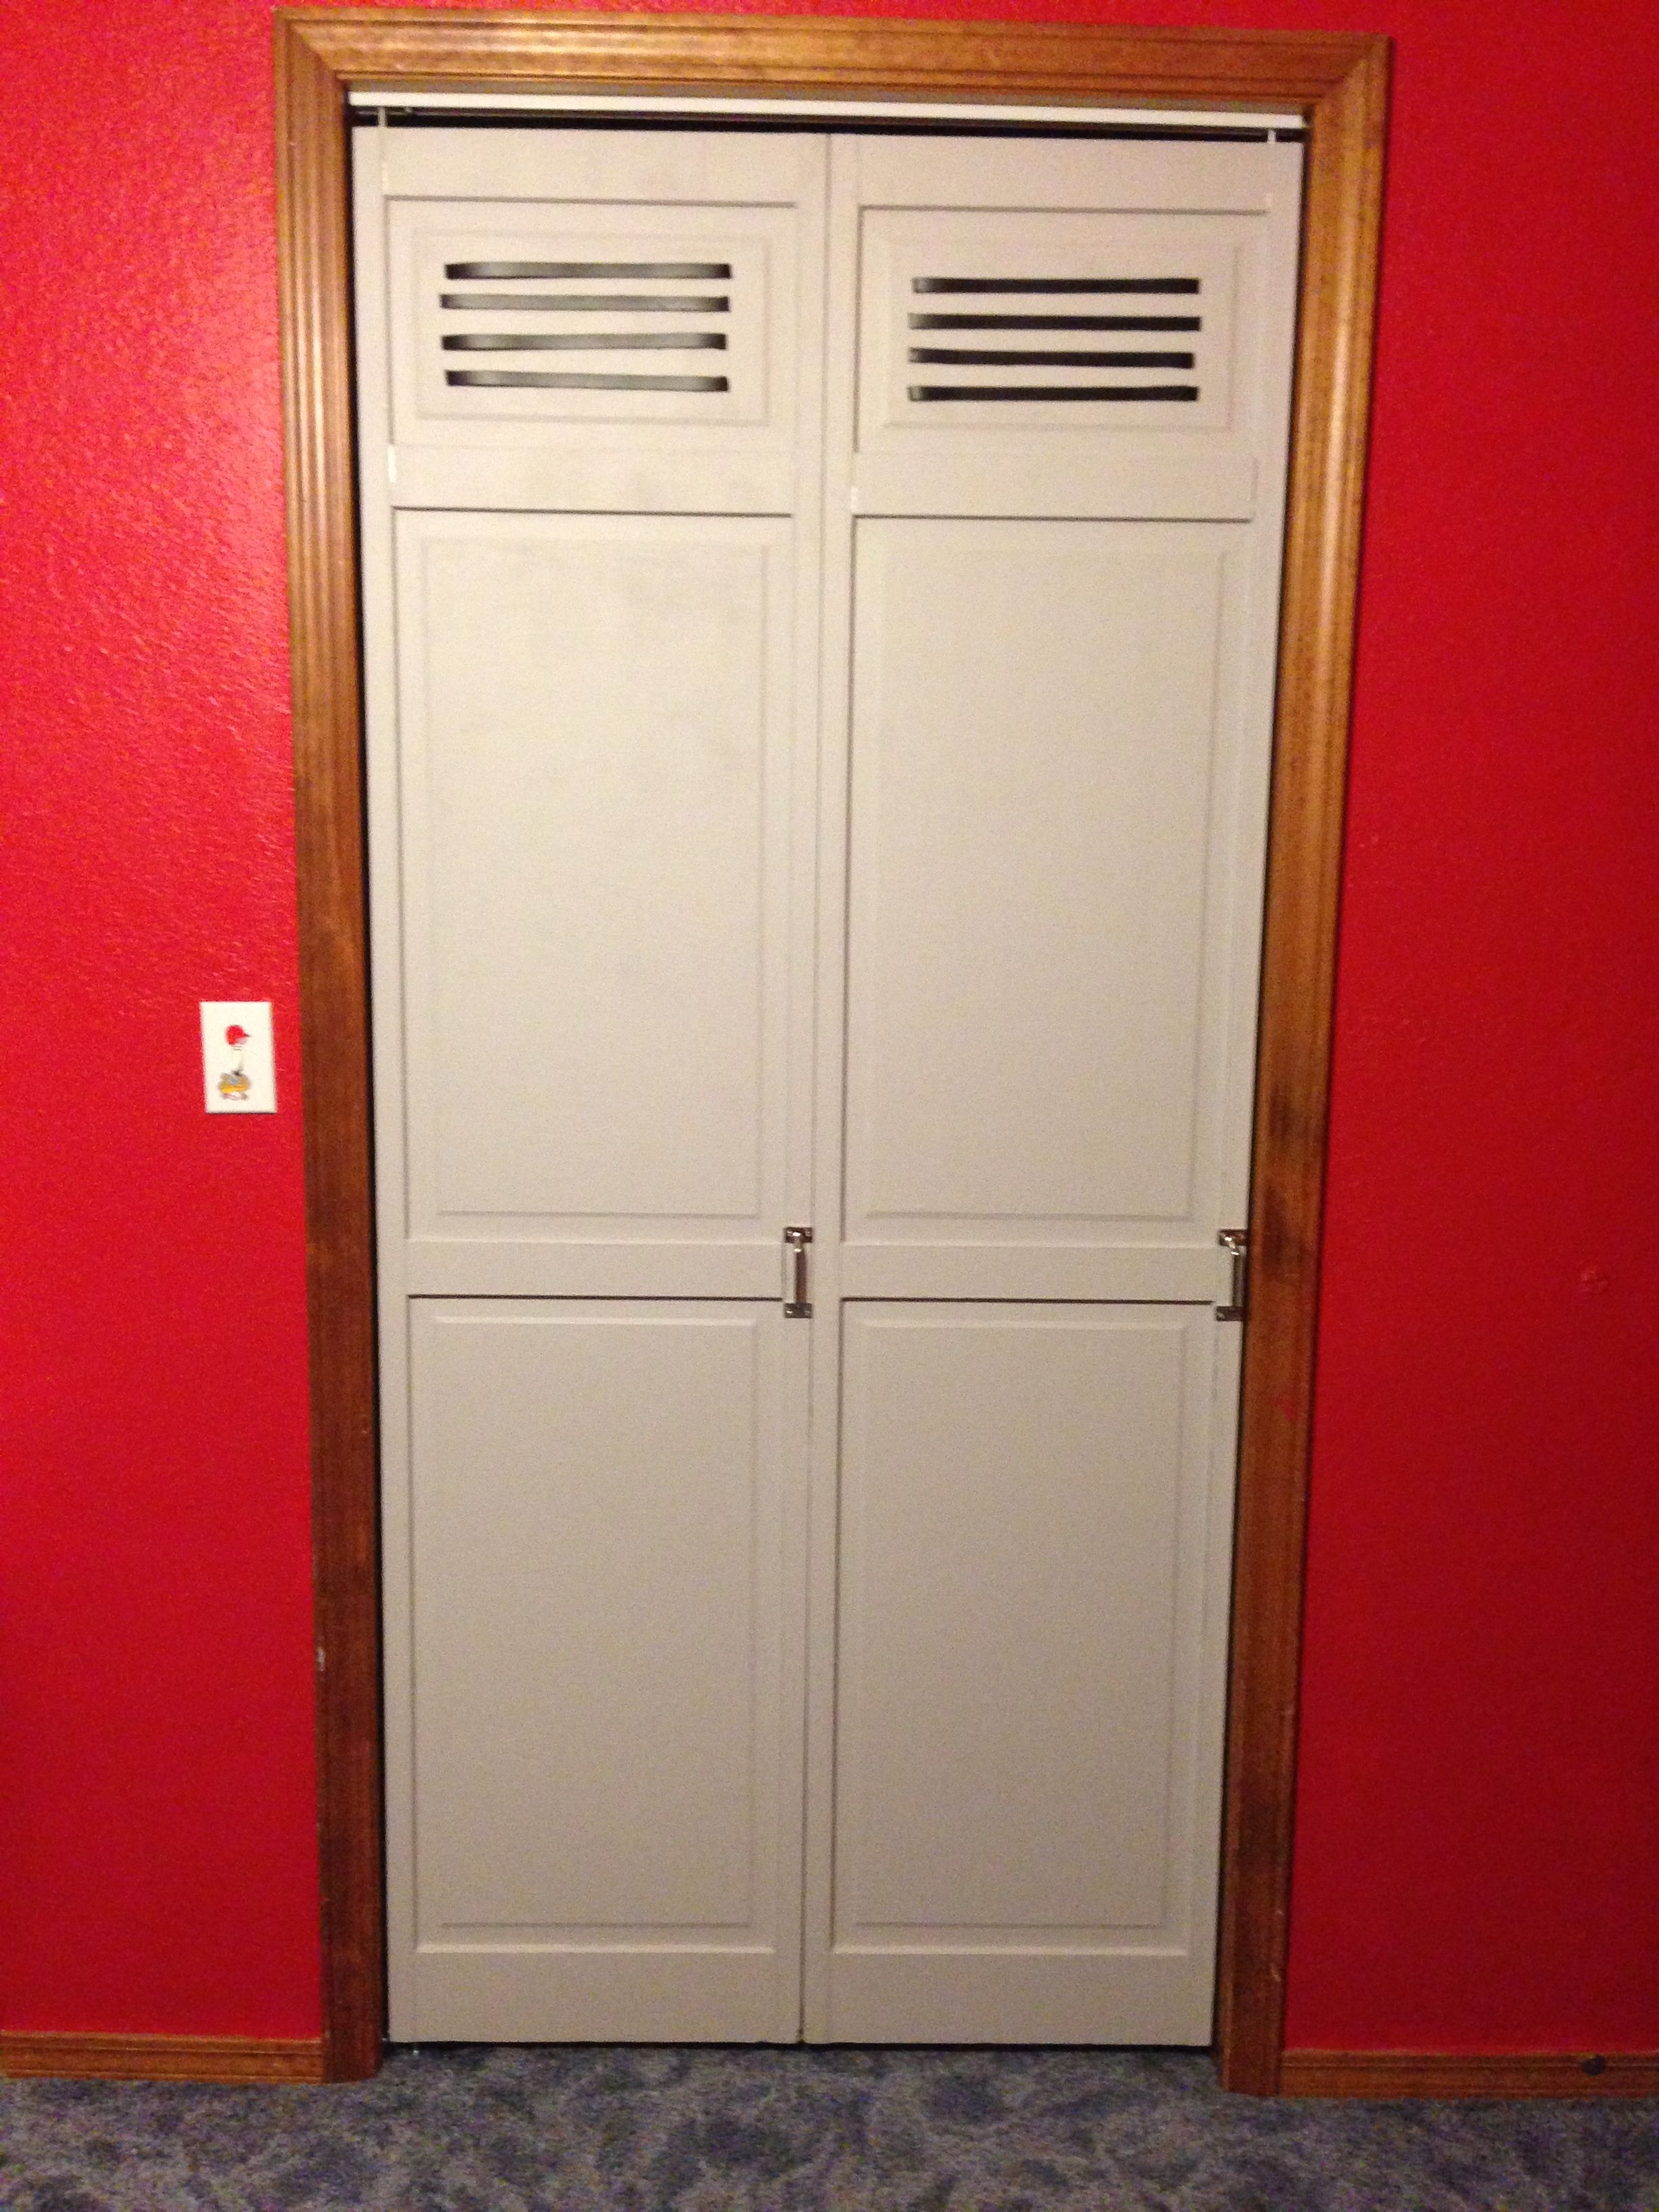 Ordinaire Locker Closet Doors With Magnetic Paint Primer